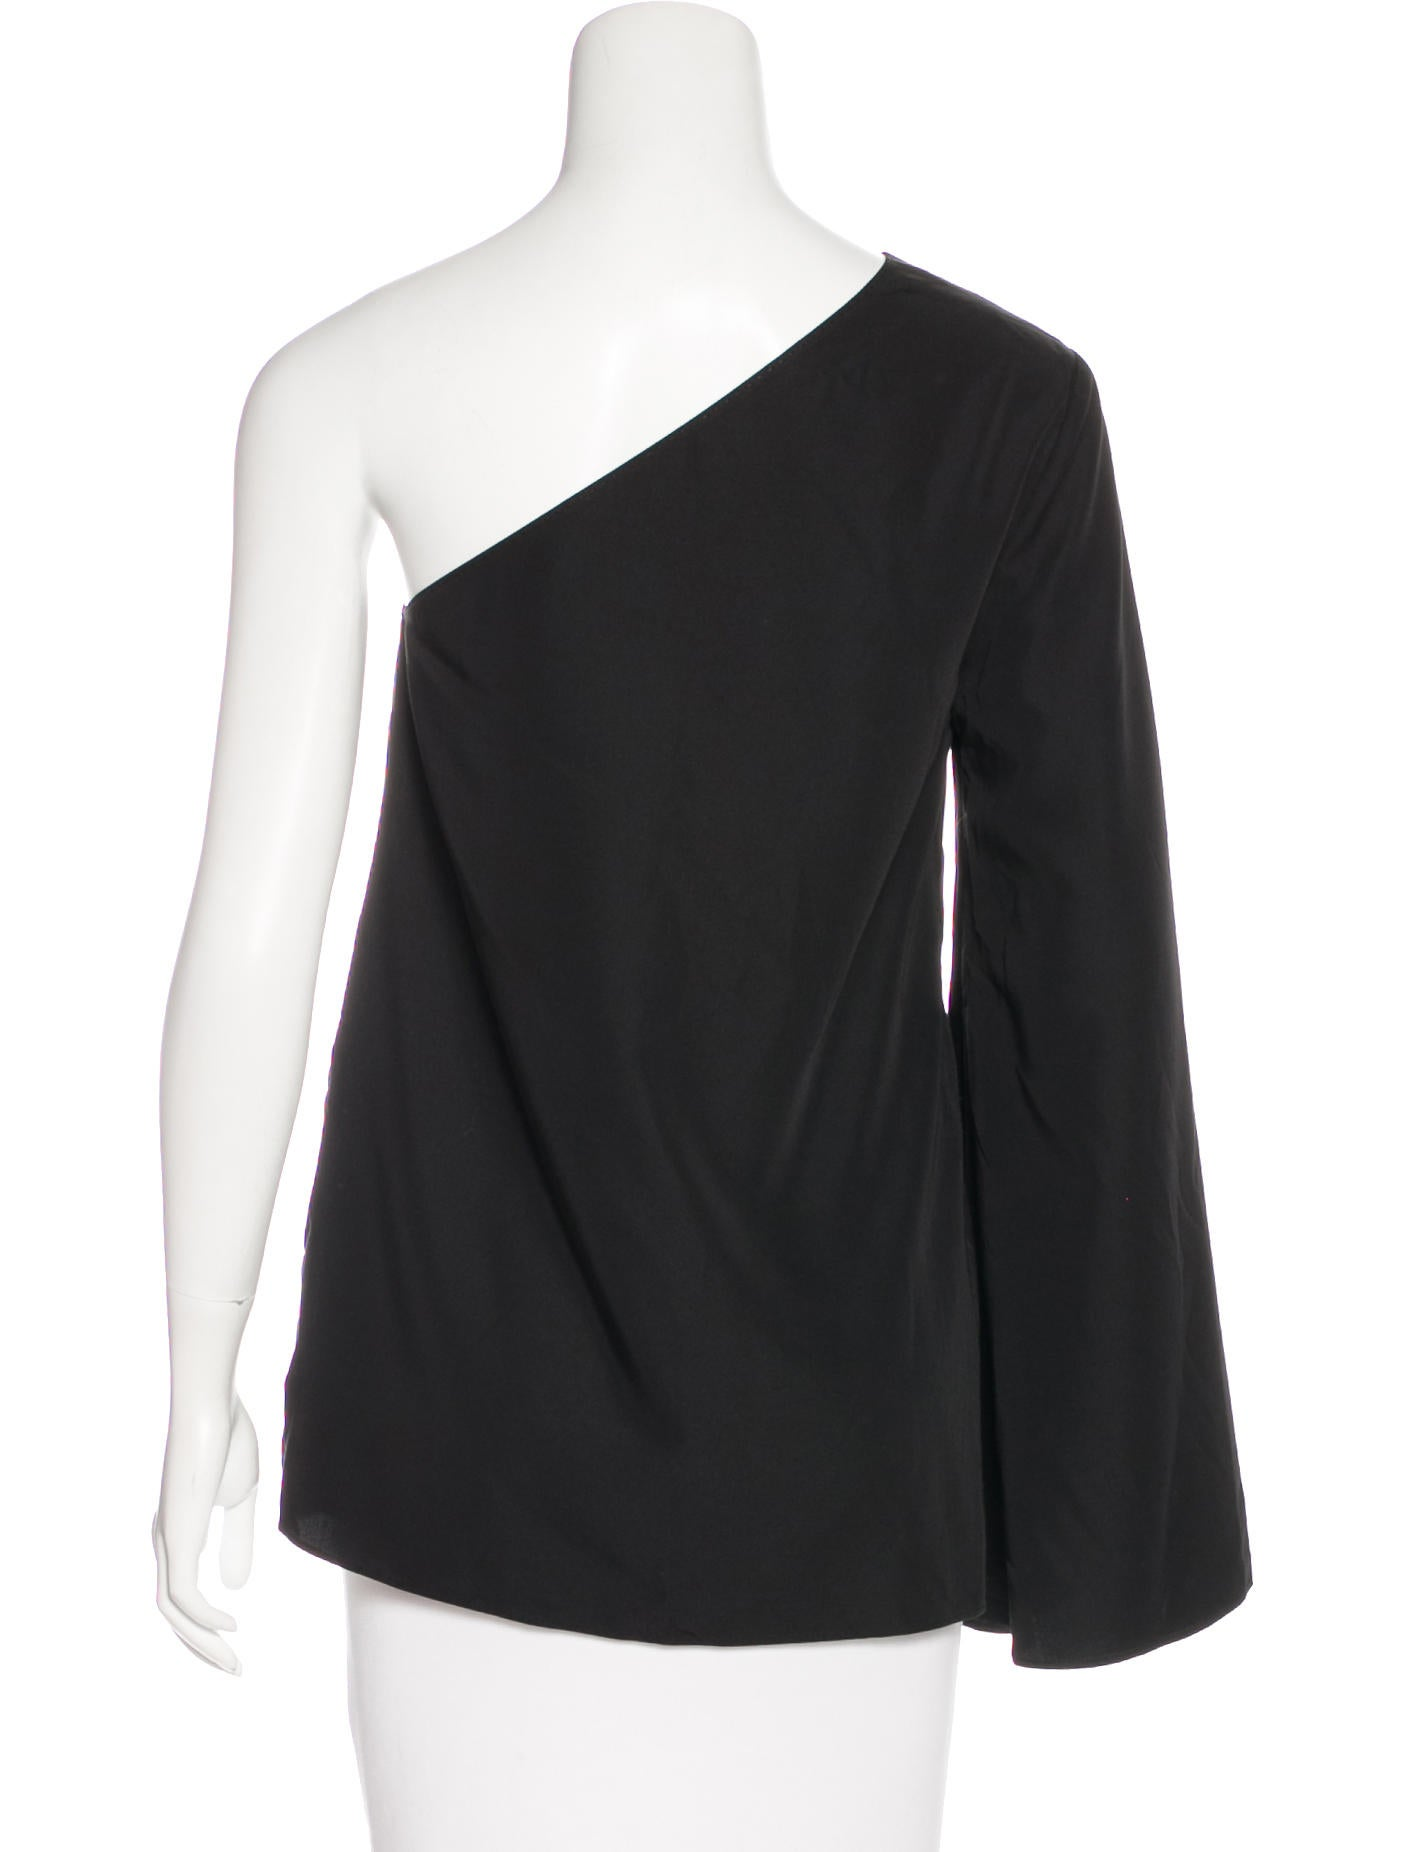 These elbow sleeve tops can be layered over other tops and dresses for a little extra warmth during cooler spring and fall weather. A layered elbow top worn over the top of a dress or embellished top can look very smart for an evening out at a high-end restaurant or the theater.